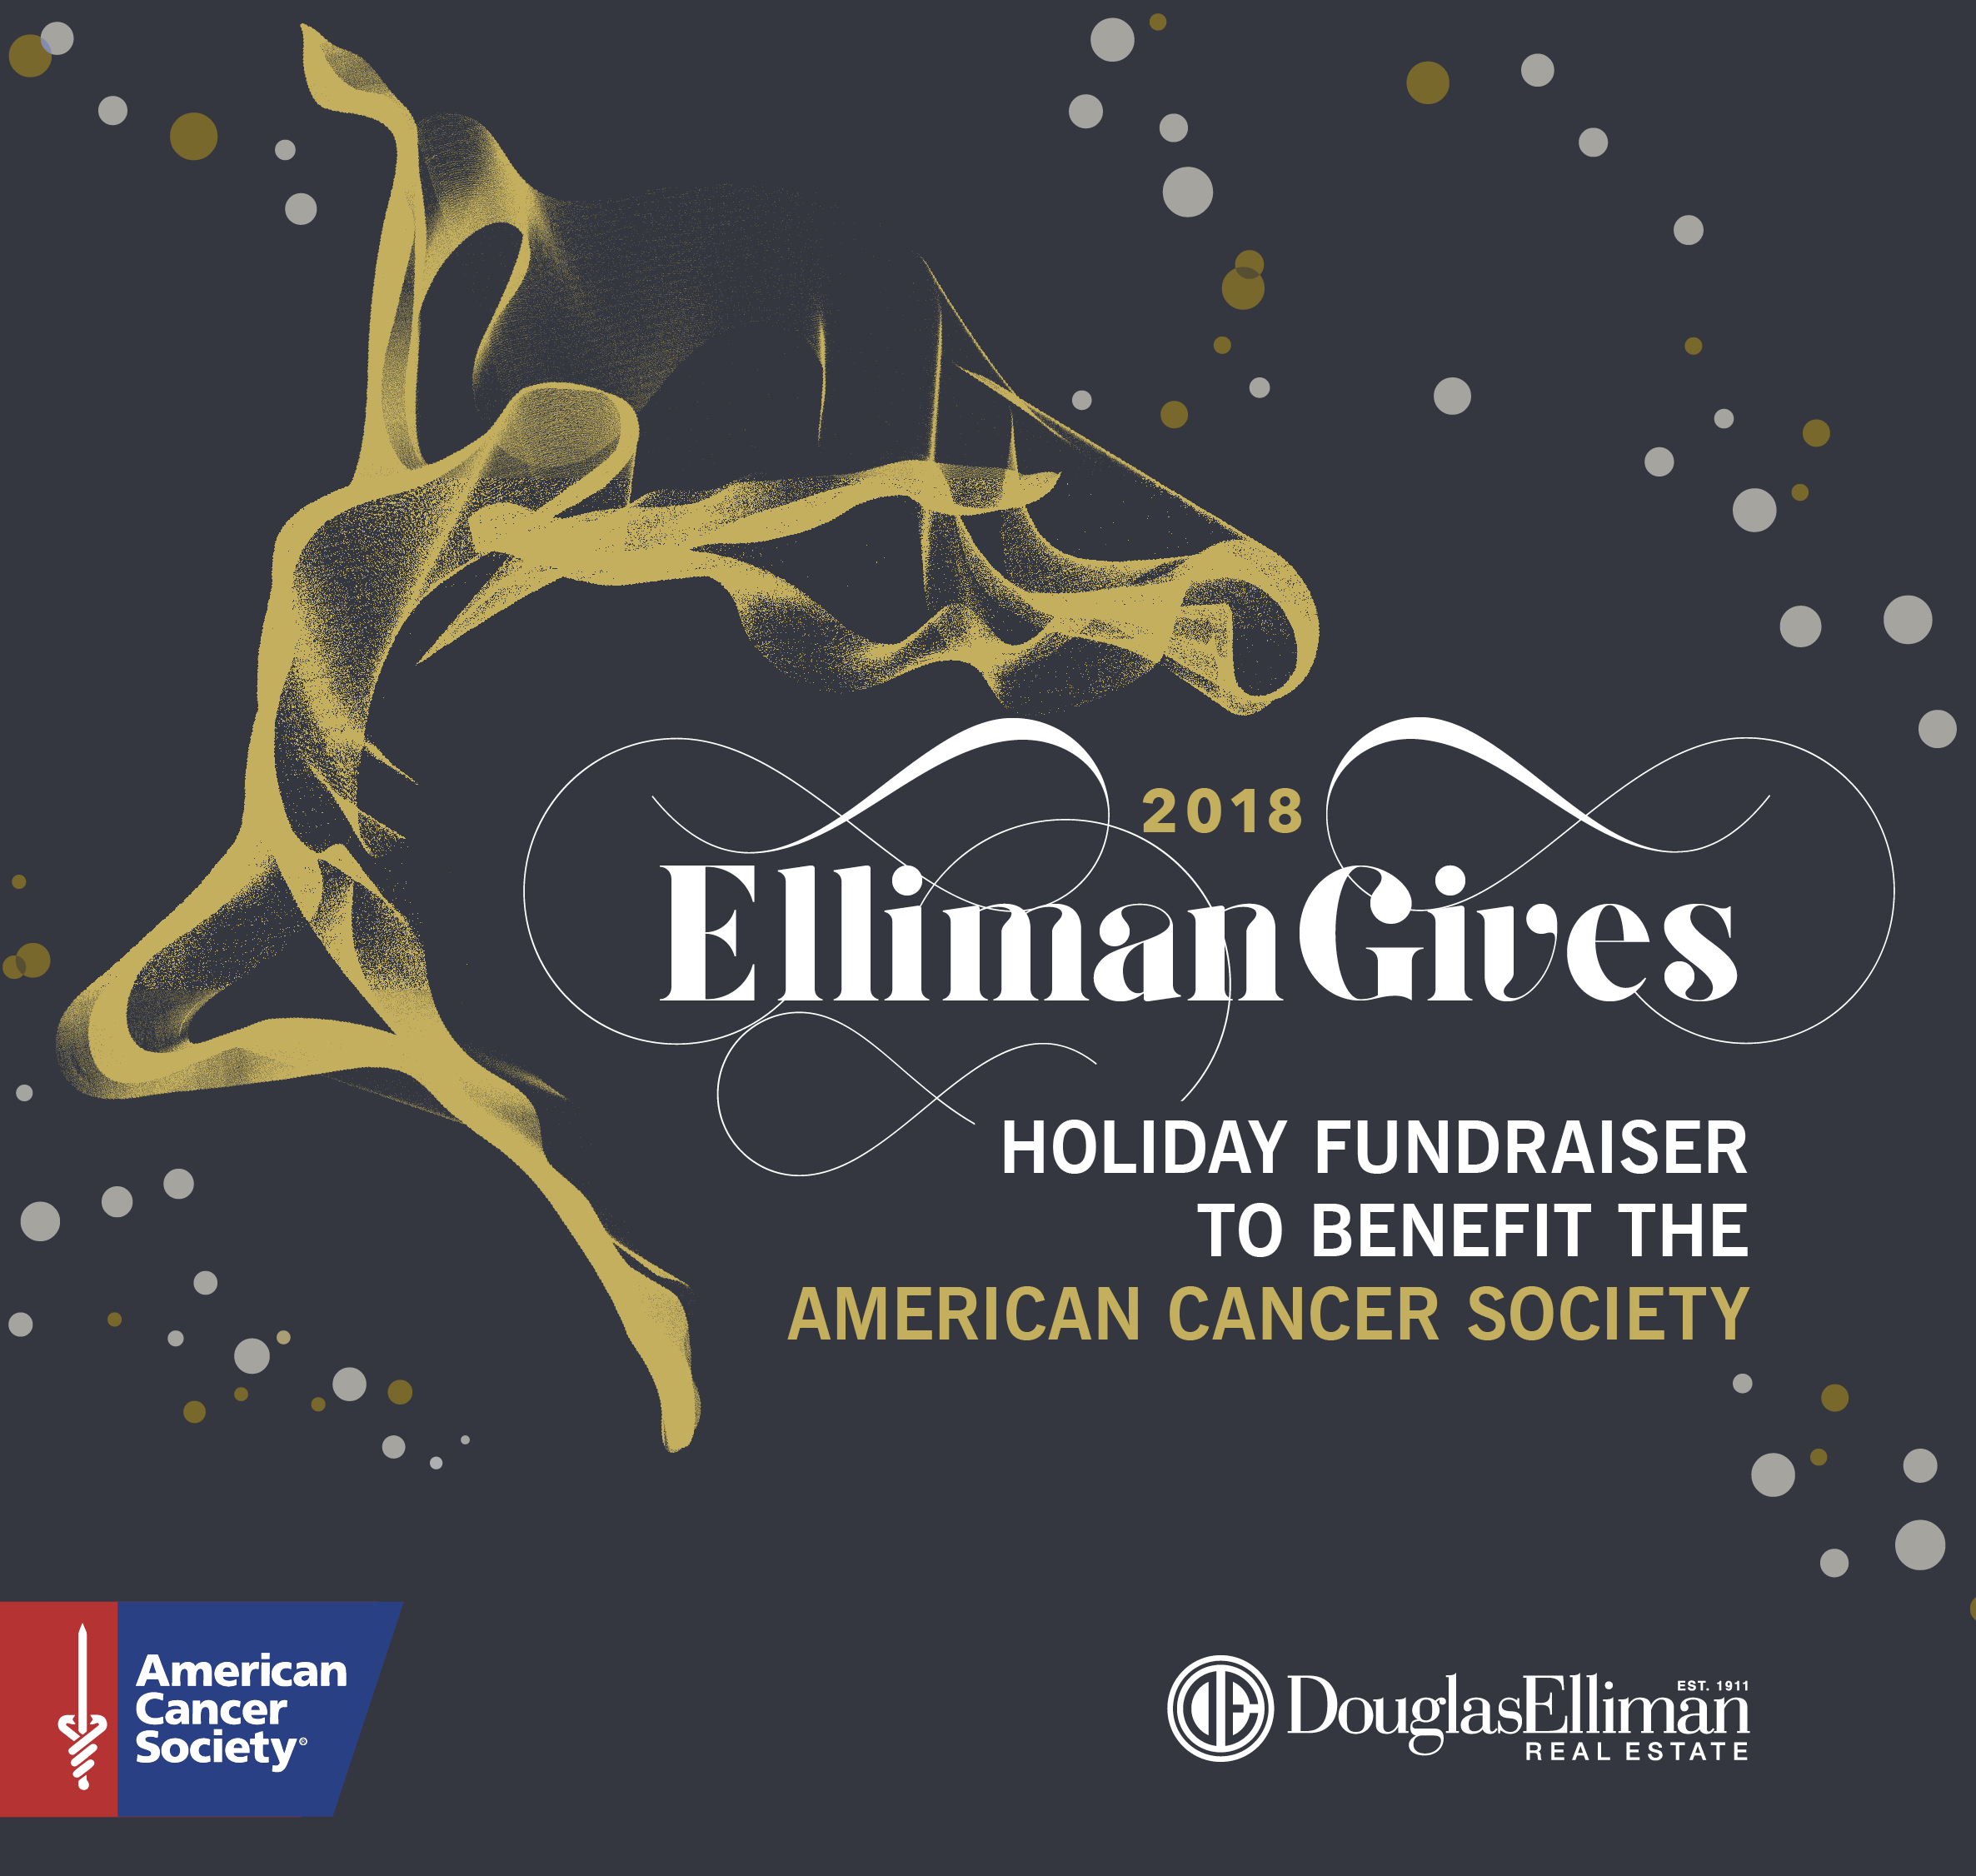 Elliman Cares – American Cancer Society Fundraiser 2018